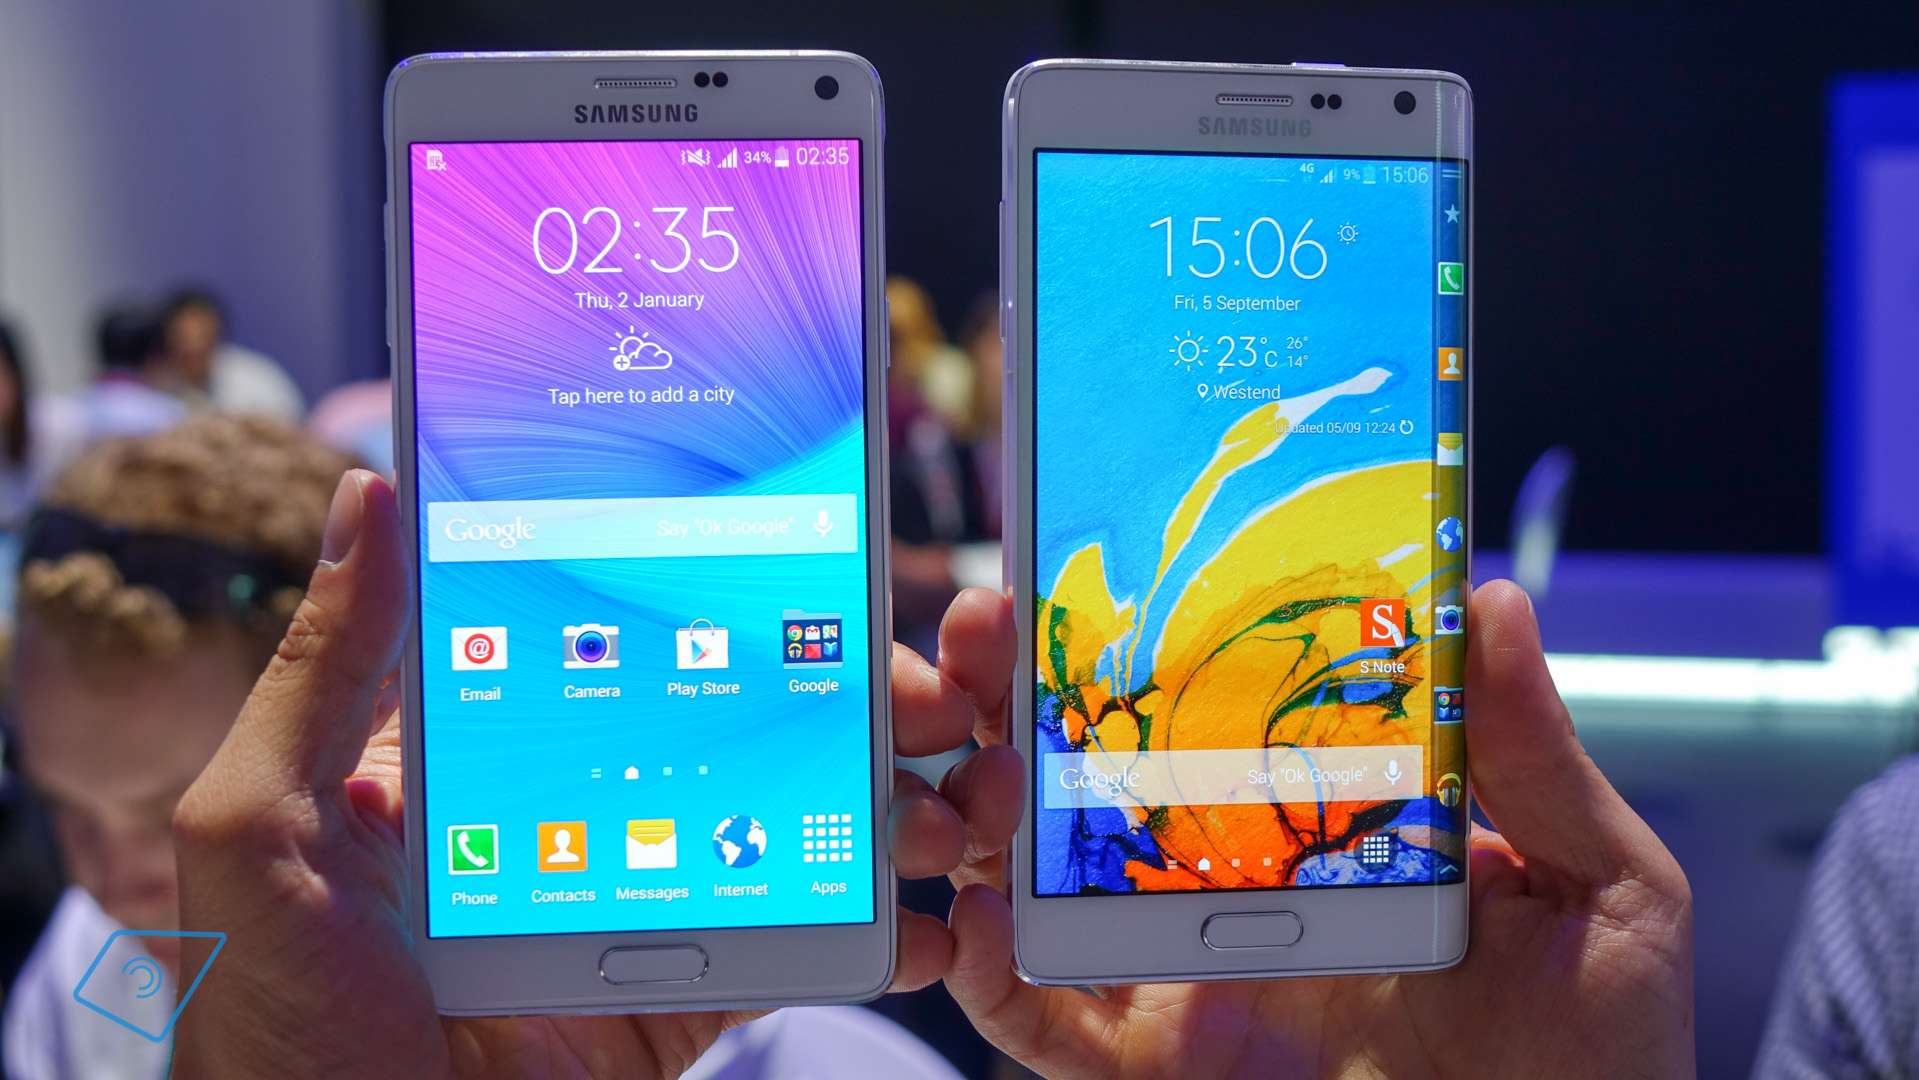 Samsung-Galaxy-Note-4-vs.-Galaxy-Note-Edge-2